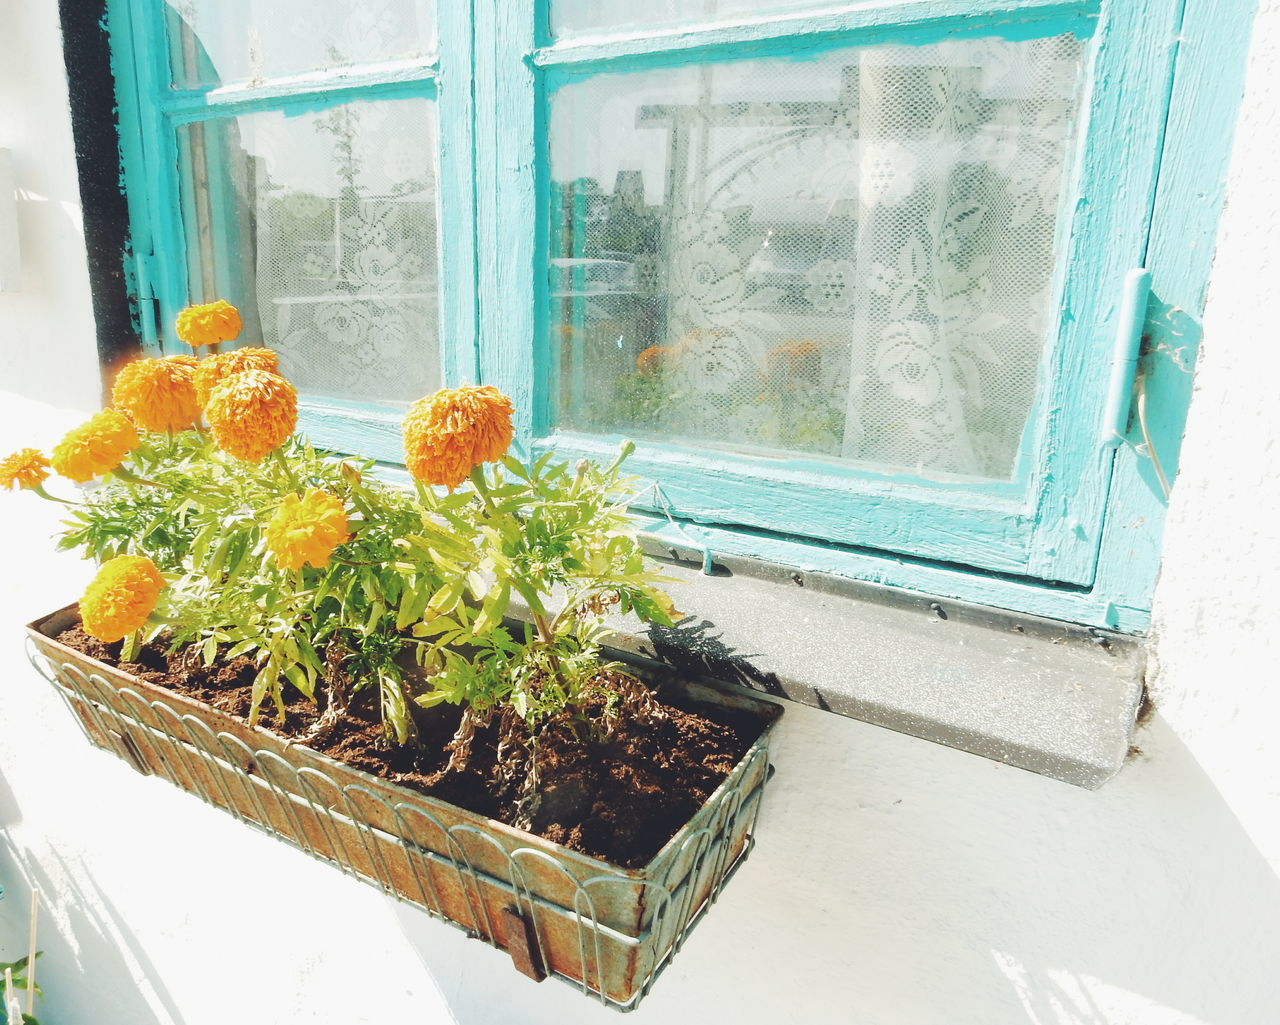 High Angle View Of Orange Flowers Growing In Pot By Window